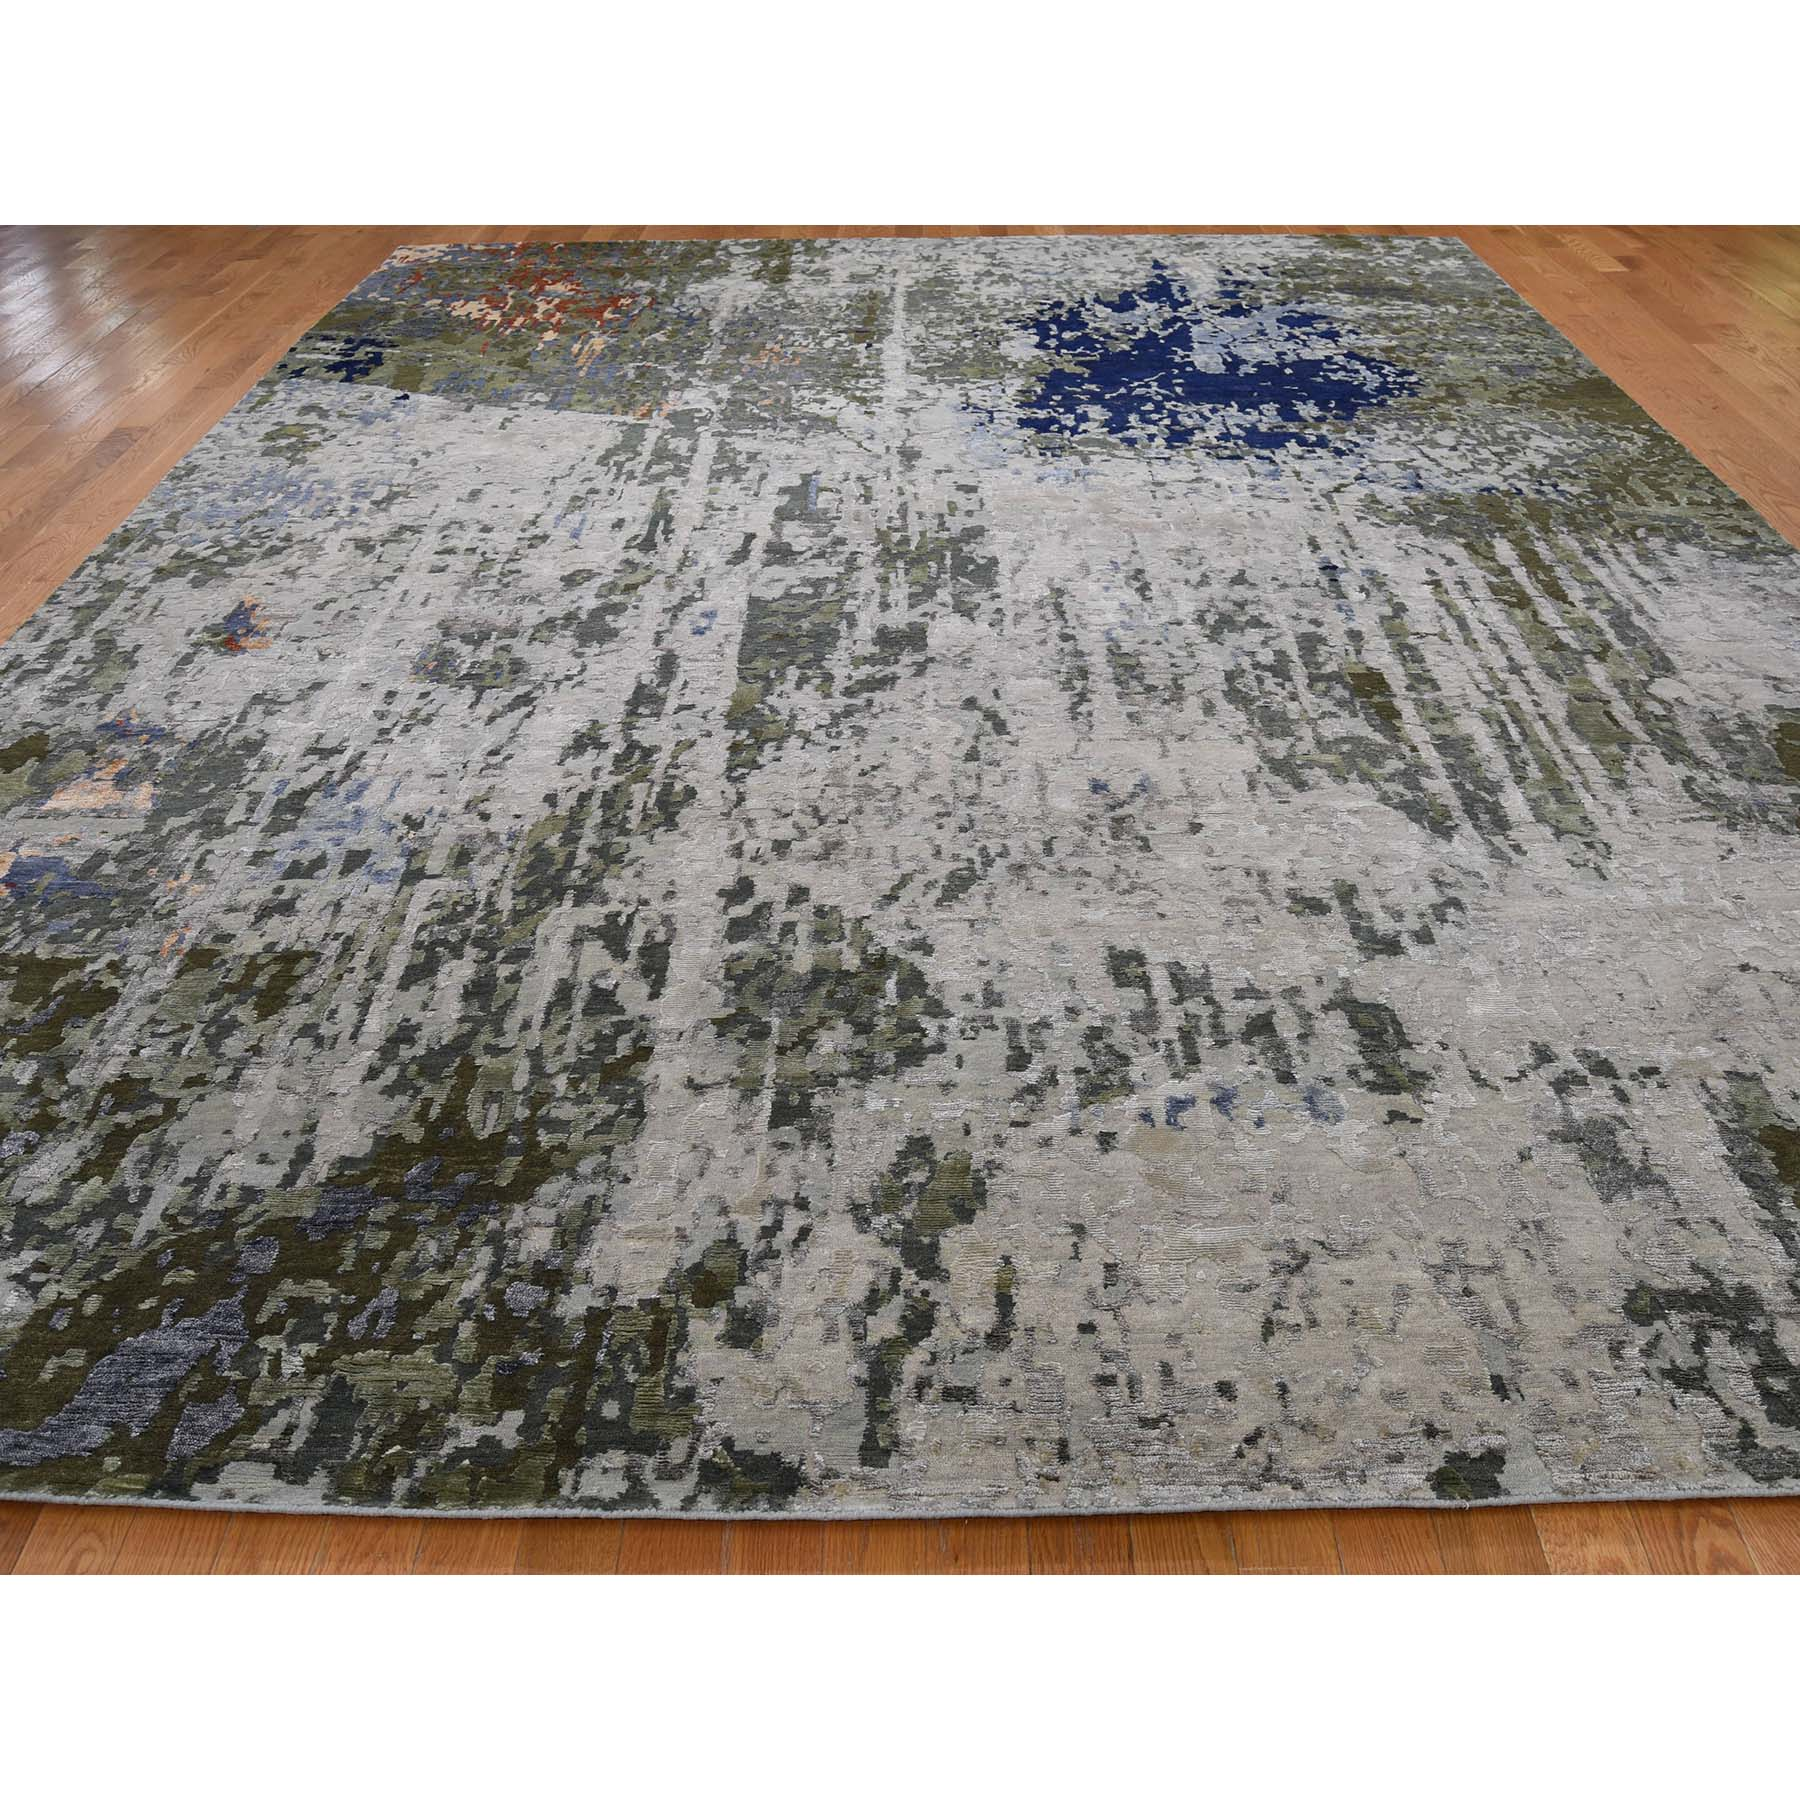 10-1 x13-10  Wool And Silk Abstract Design Hand-Knotted Oriental Rug